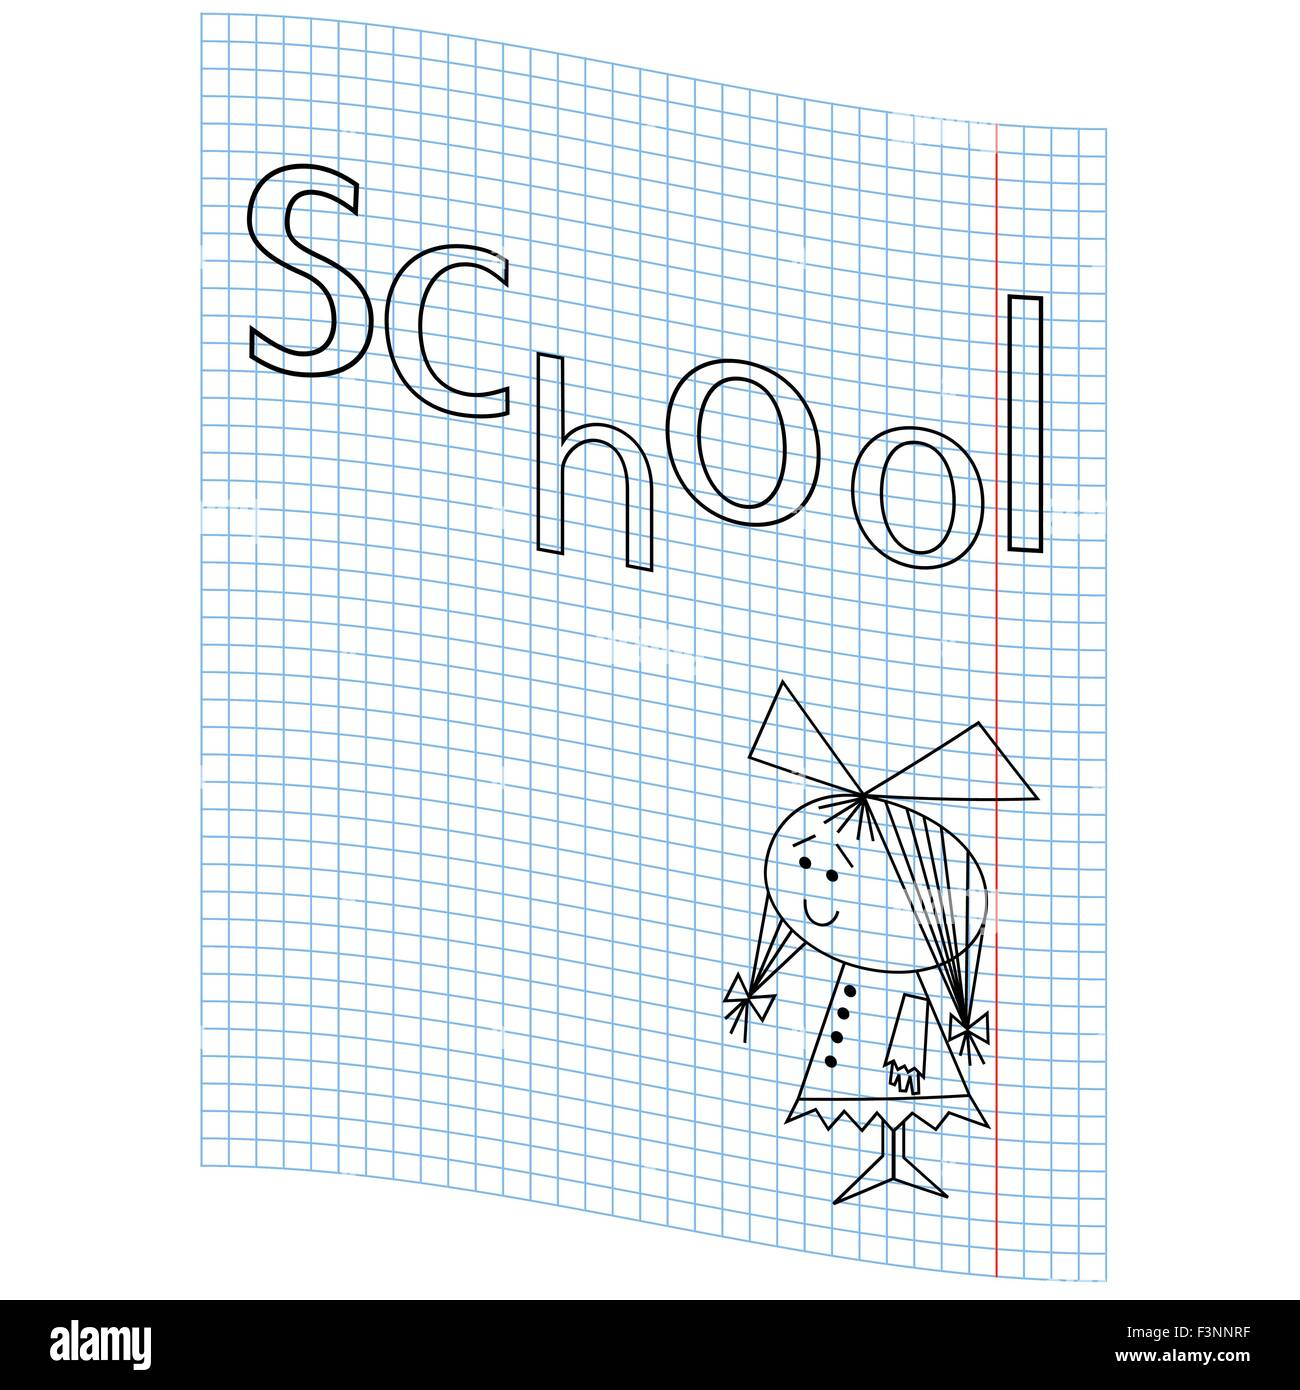 Schoolgirl and the word school on a notebook sheet, vector illustration hand drawing - Stock Vector